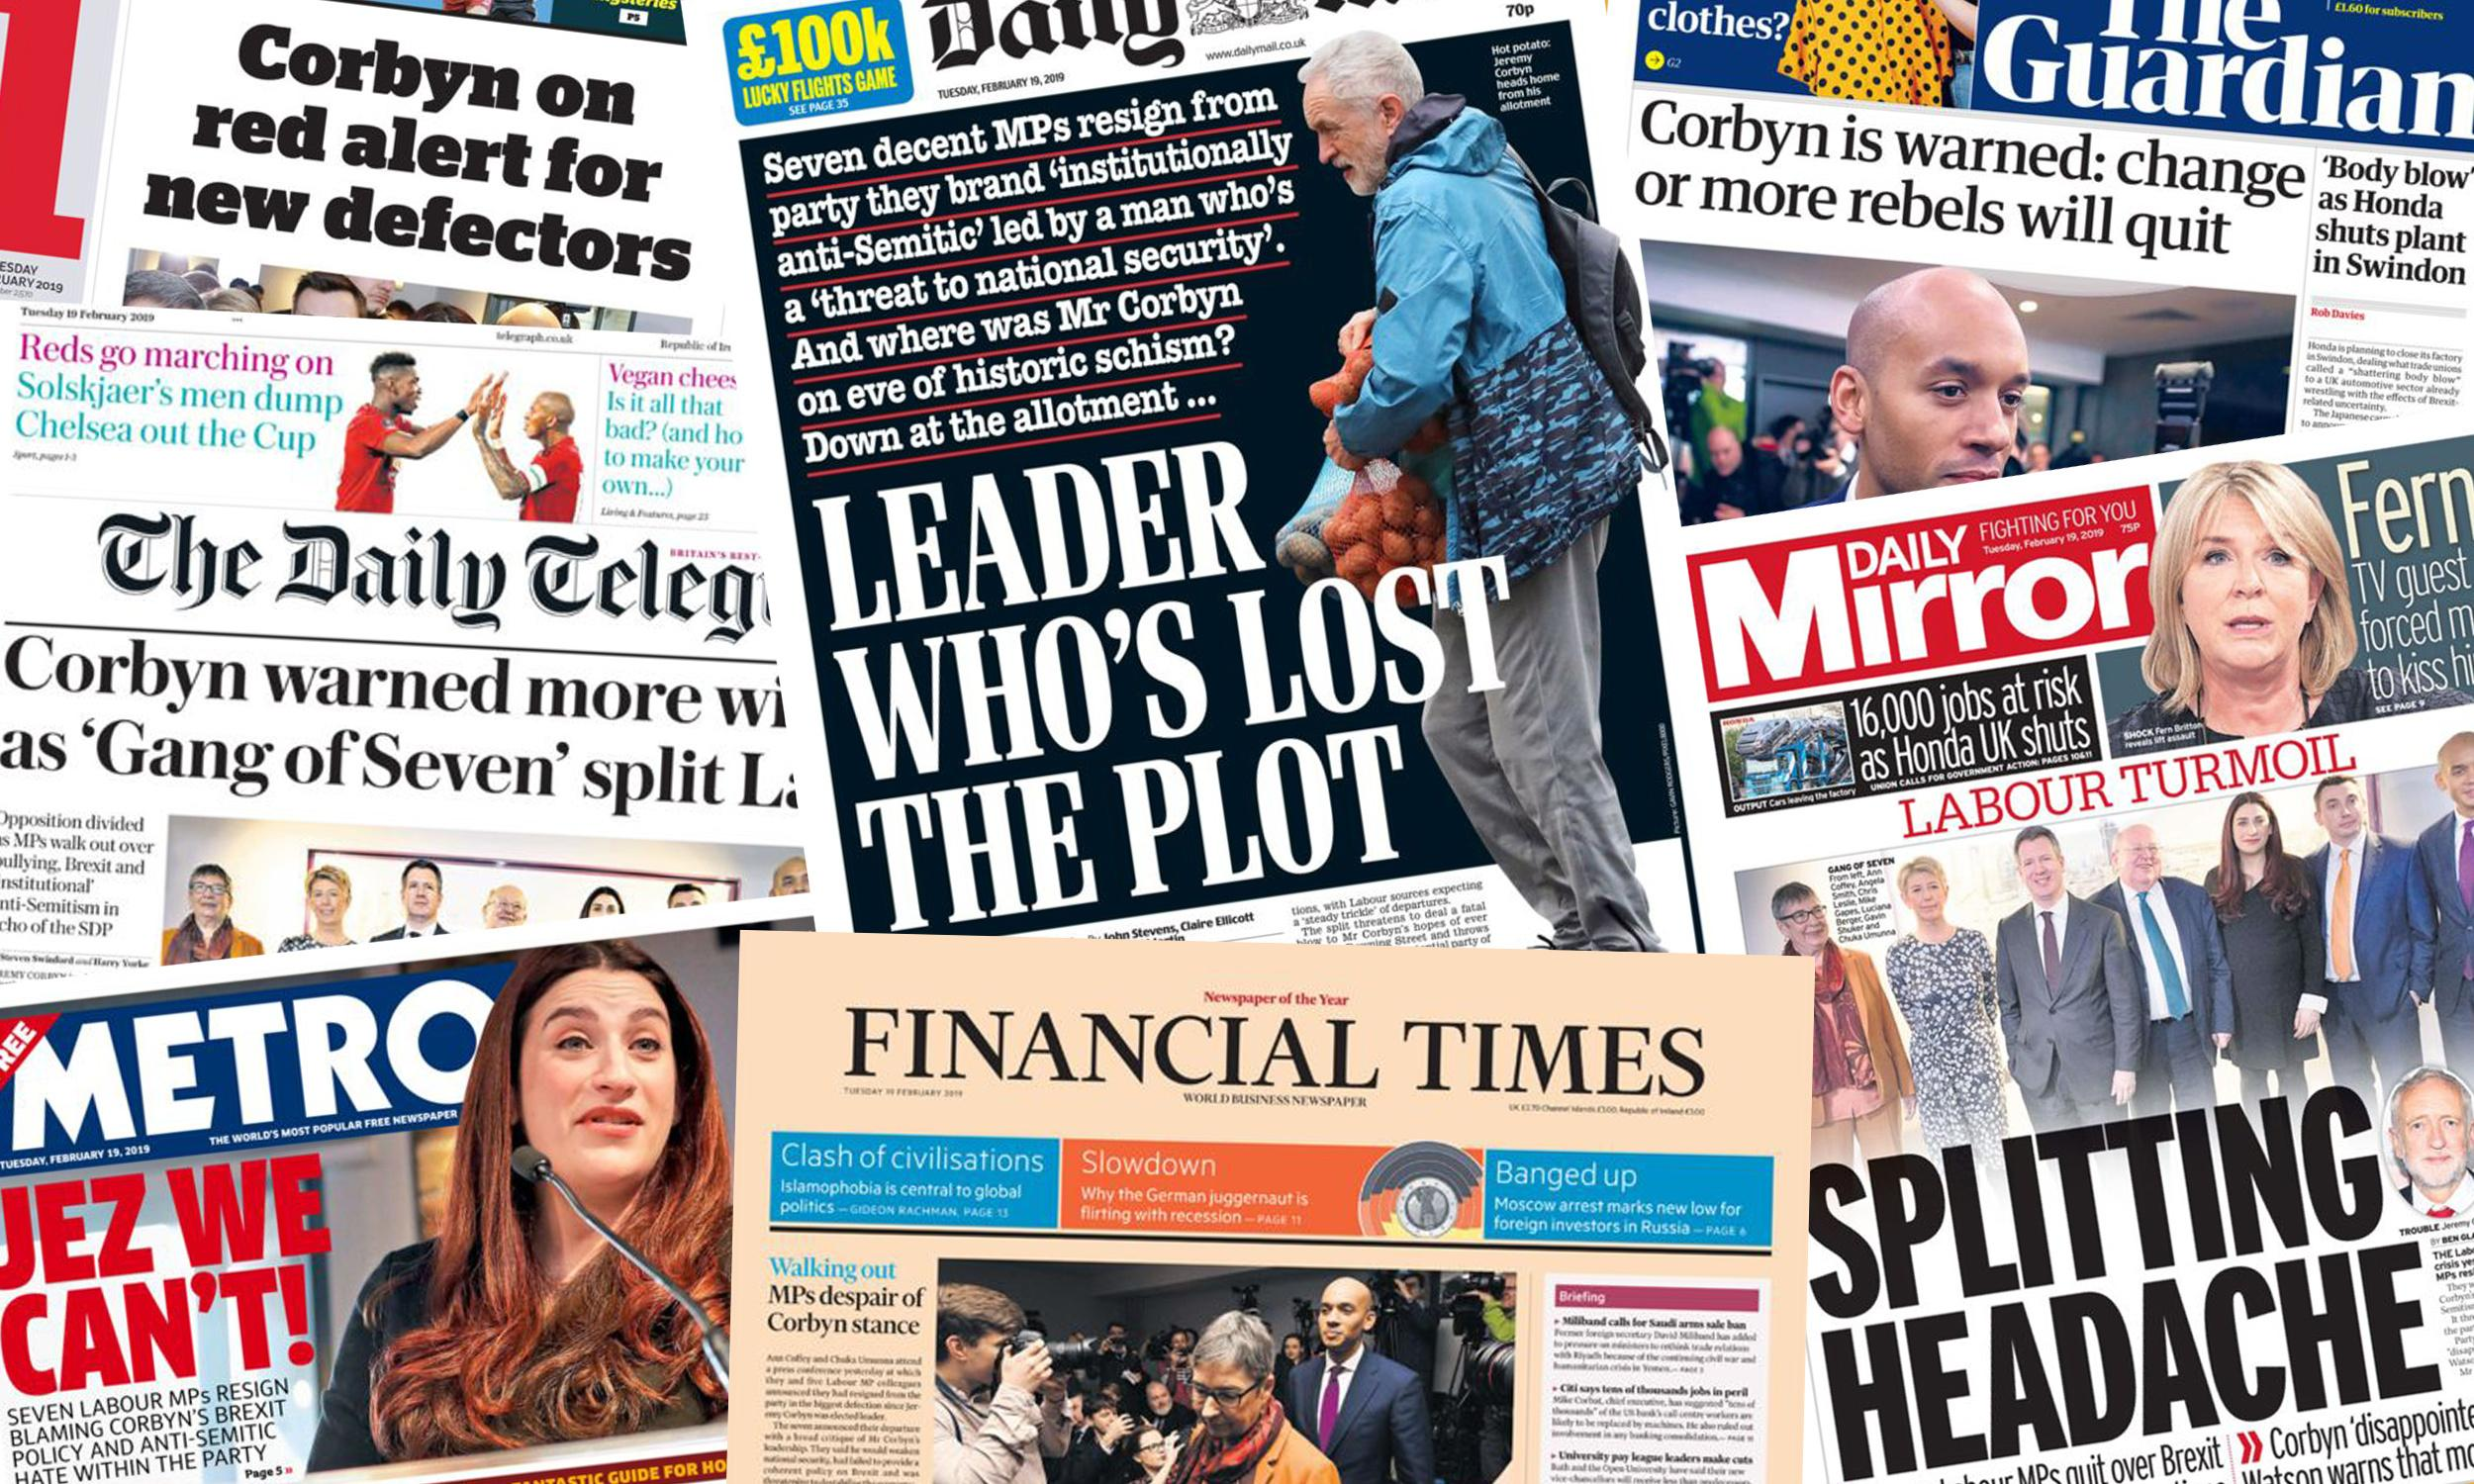 'Splitting headache': what the papers say about Labour party's turmoil